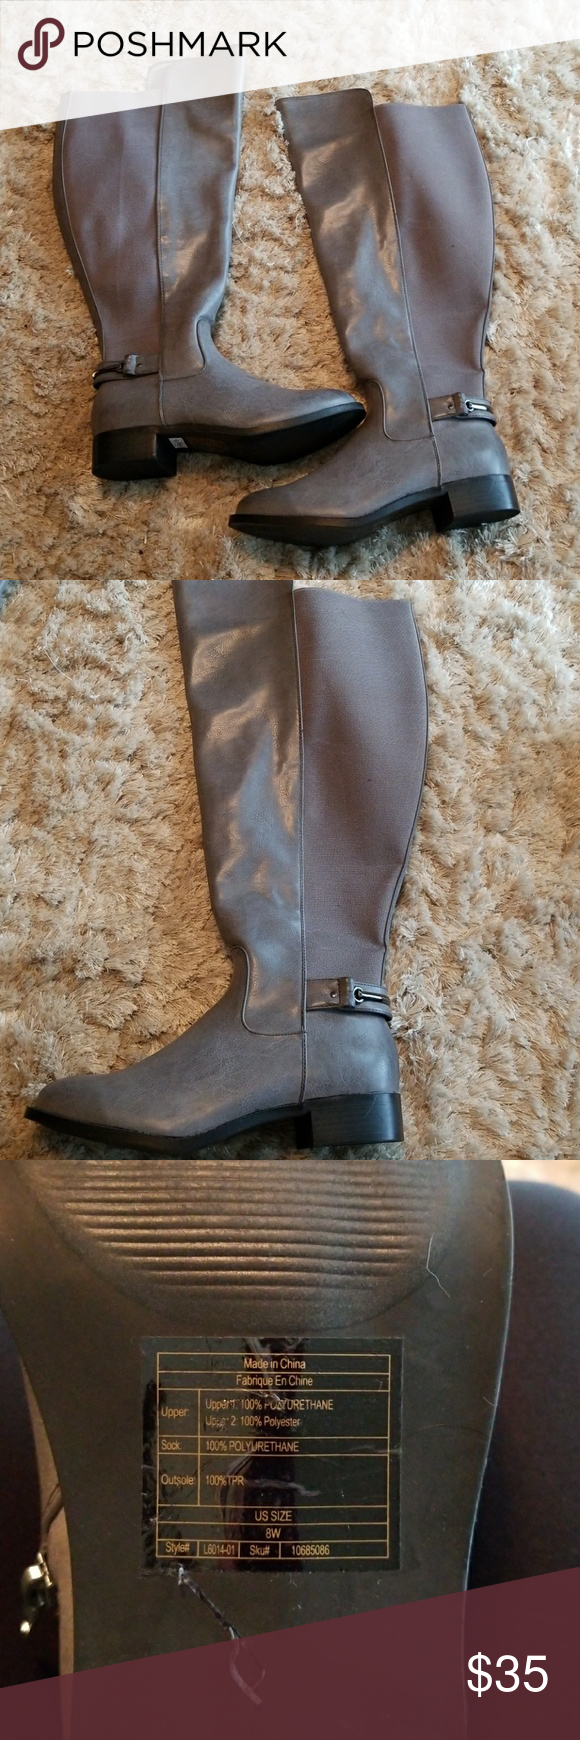 Torrid gray boots size 8 wide | Grey boots, Boots, Over the